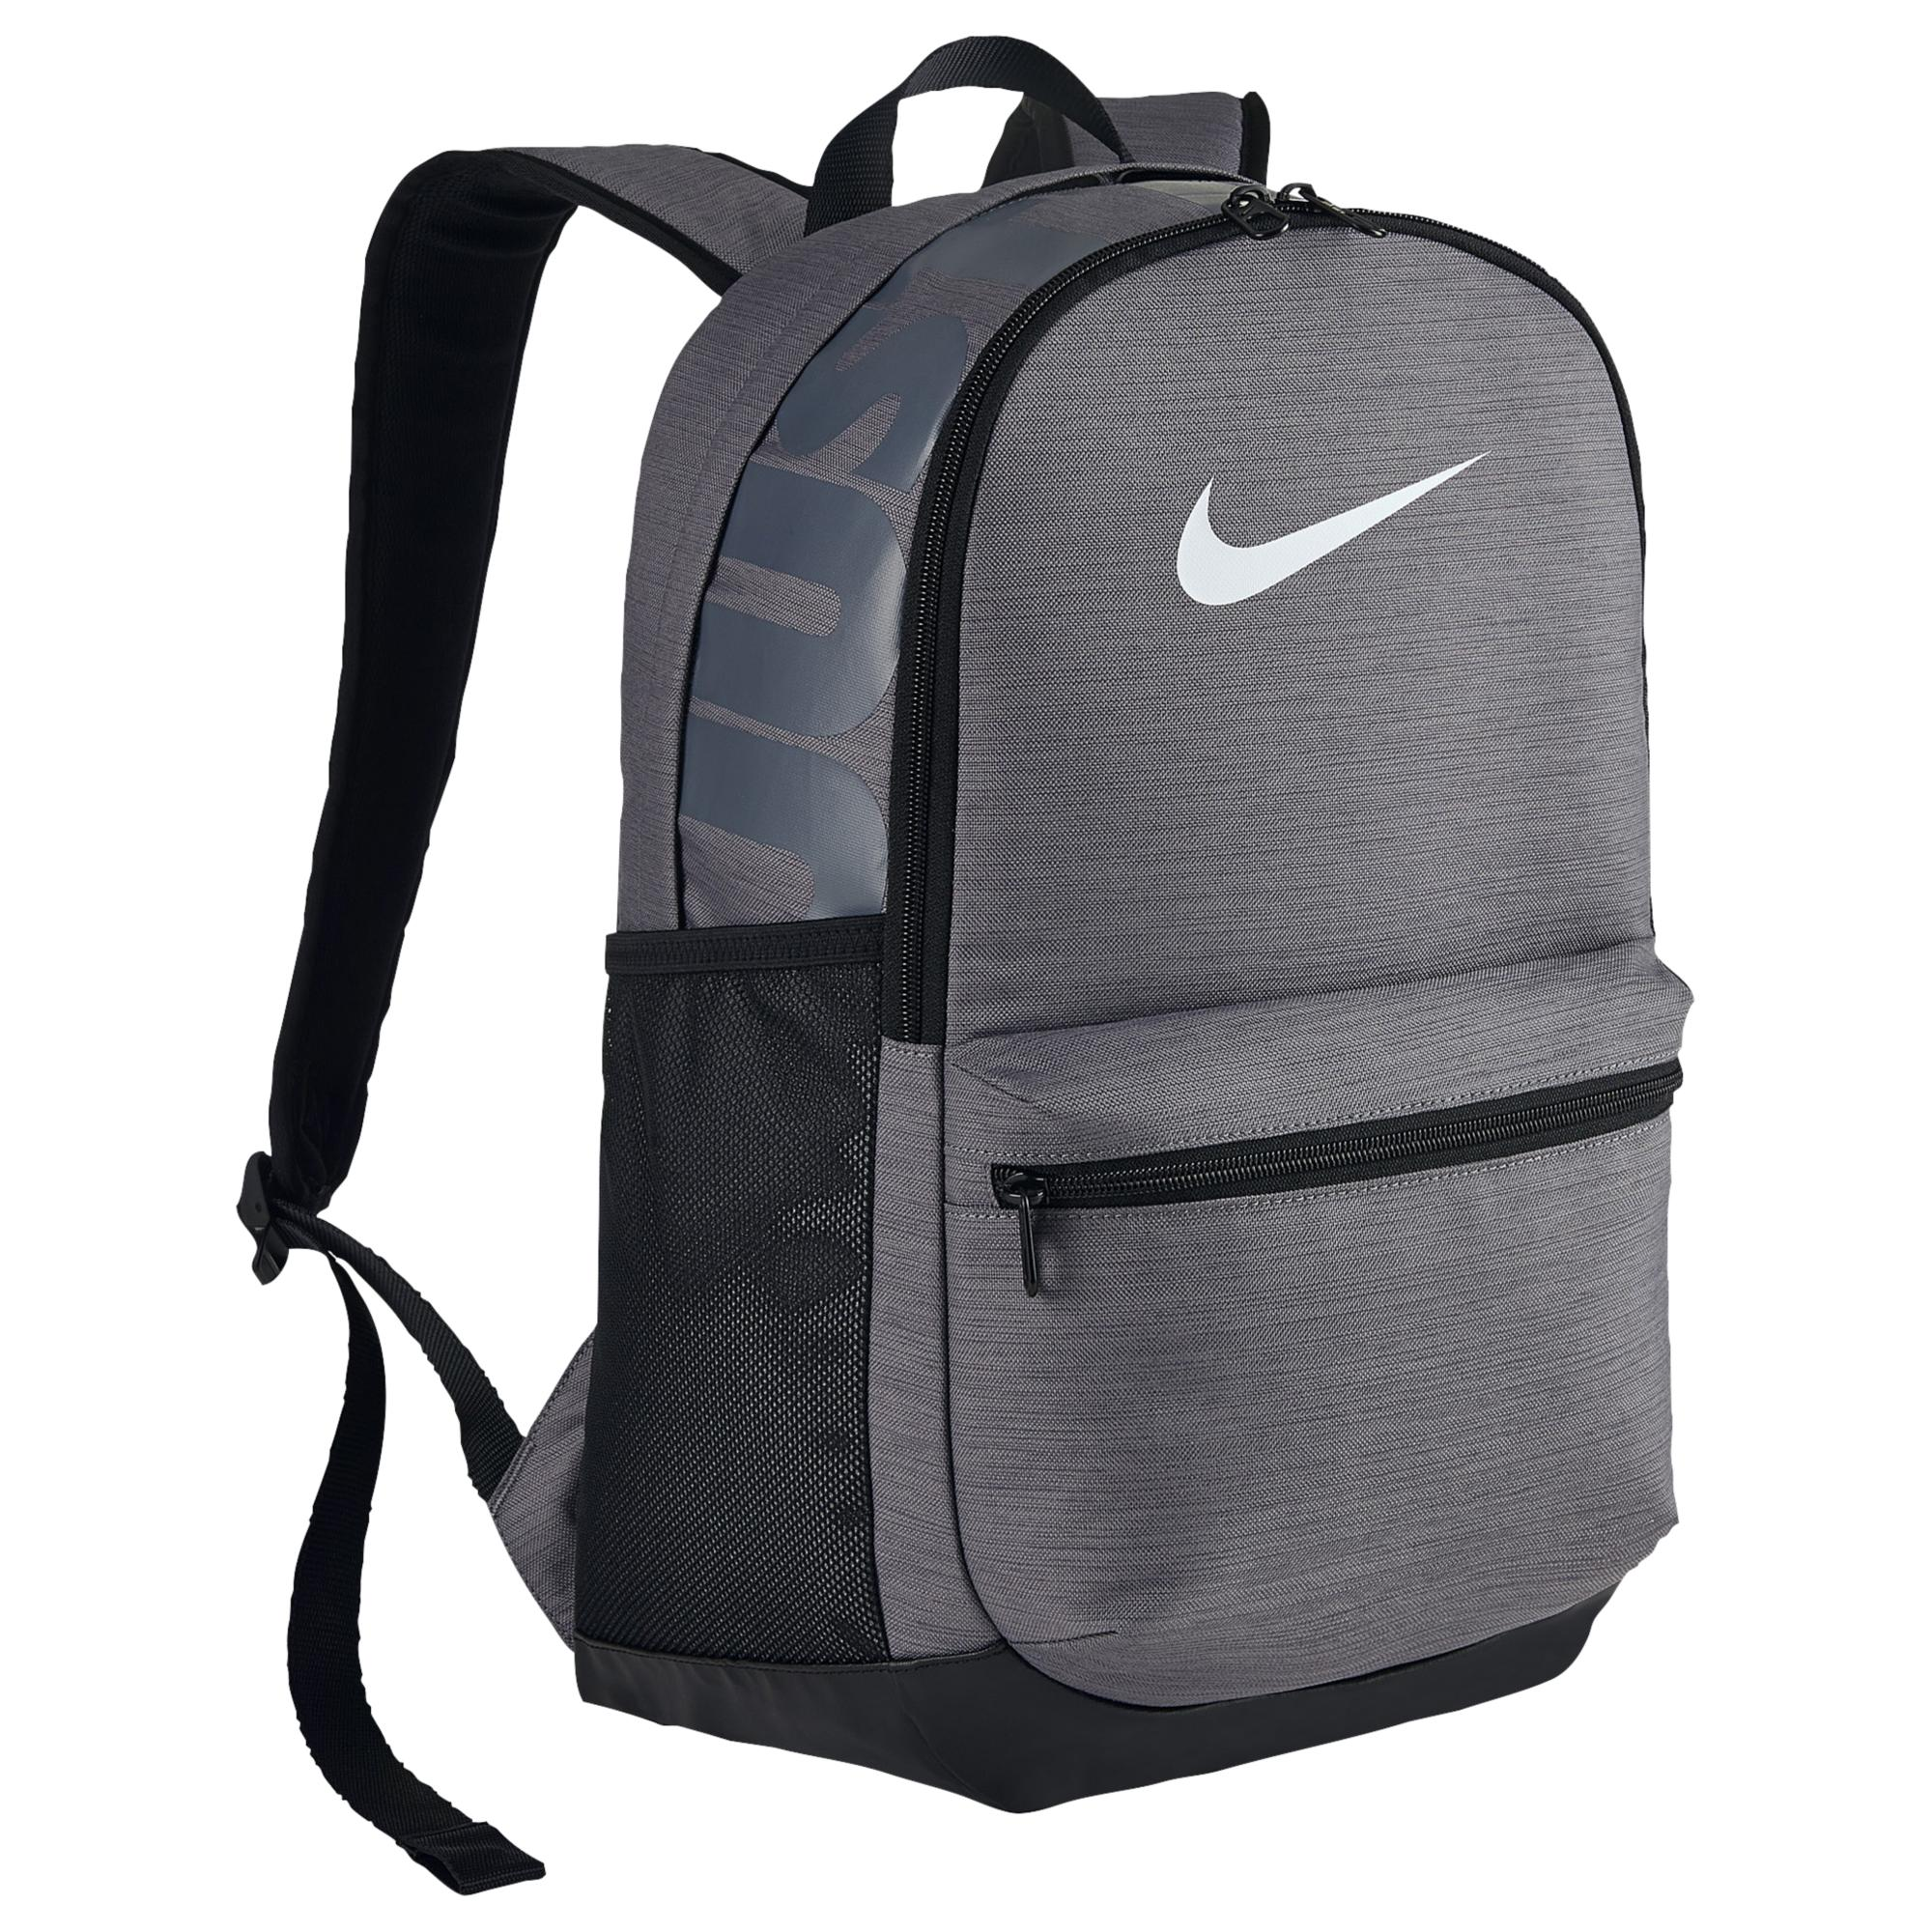 4bbf7458ea7b7 Lyst - Nike Brasilia Medium Backpack in Gray